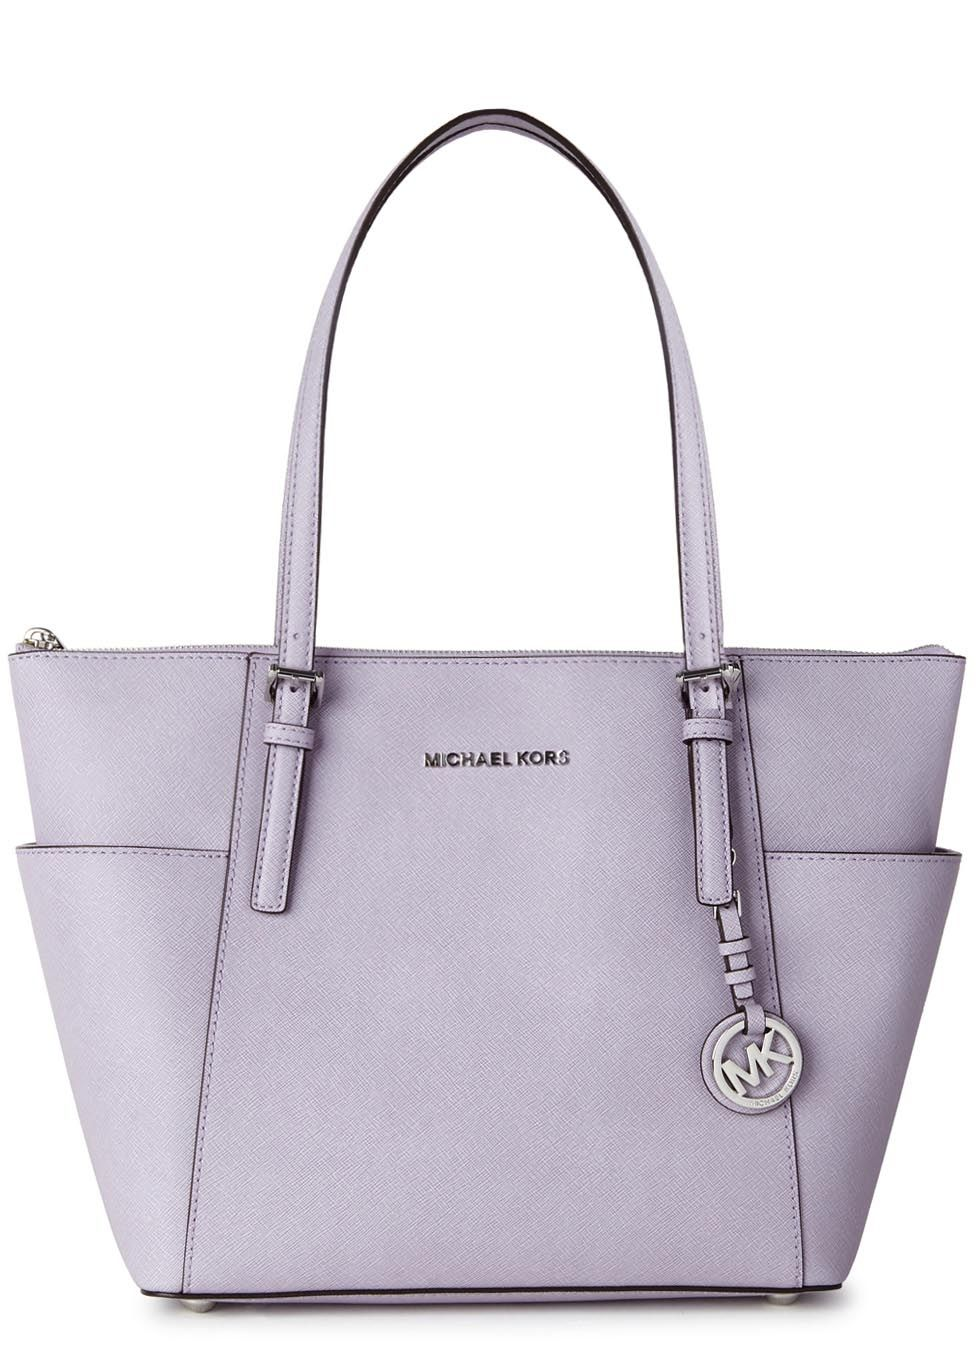 c91622094601 Womens Tote Bags Michael Kors Jet Set Lilac Leather Tote ( 310) ❤ liked on